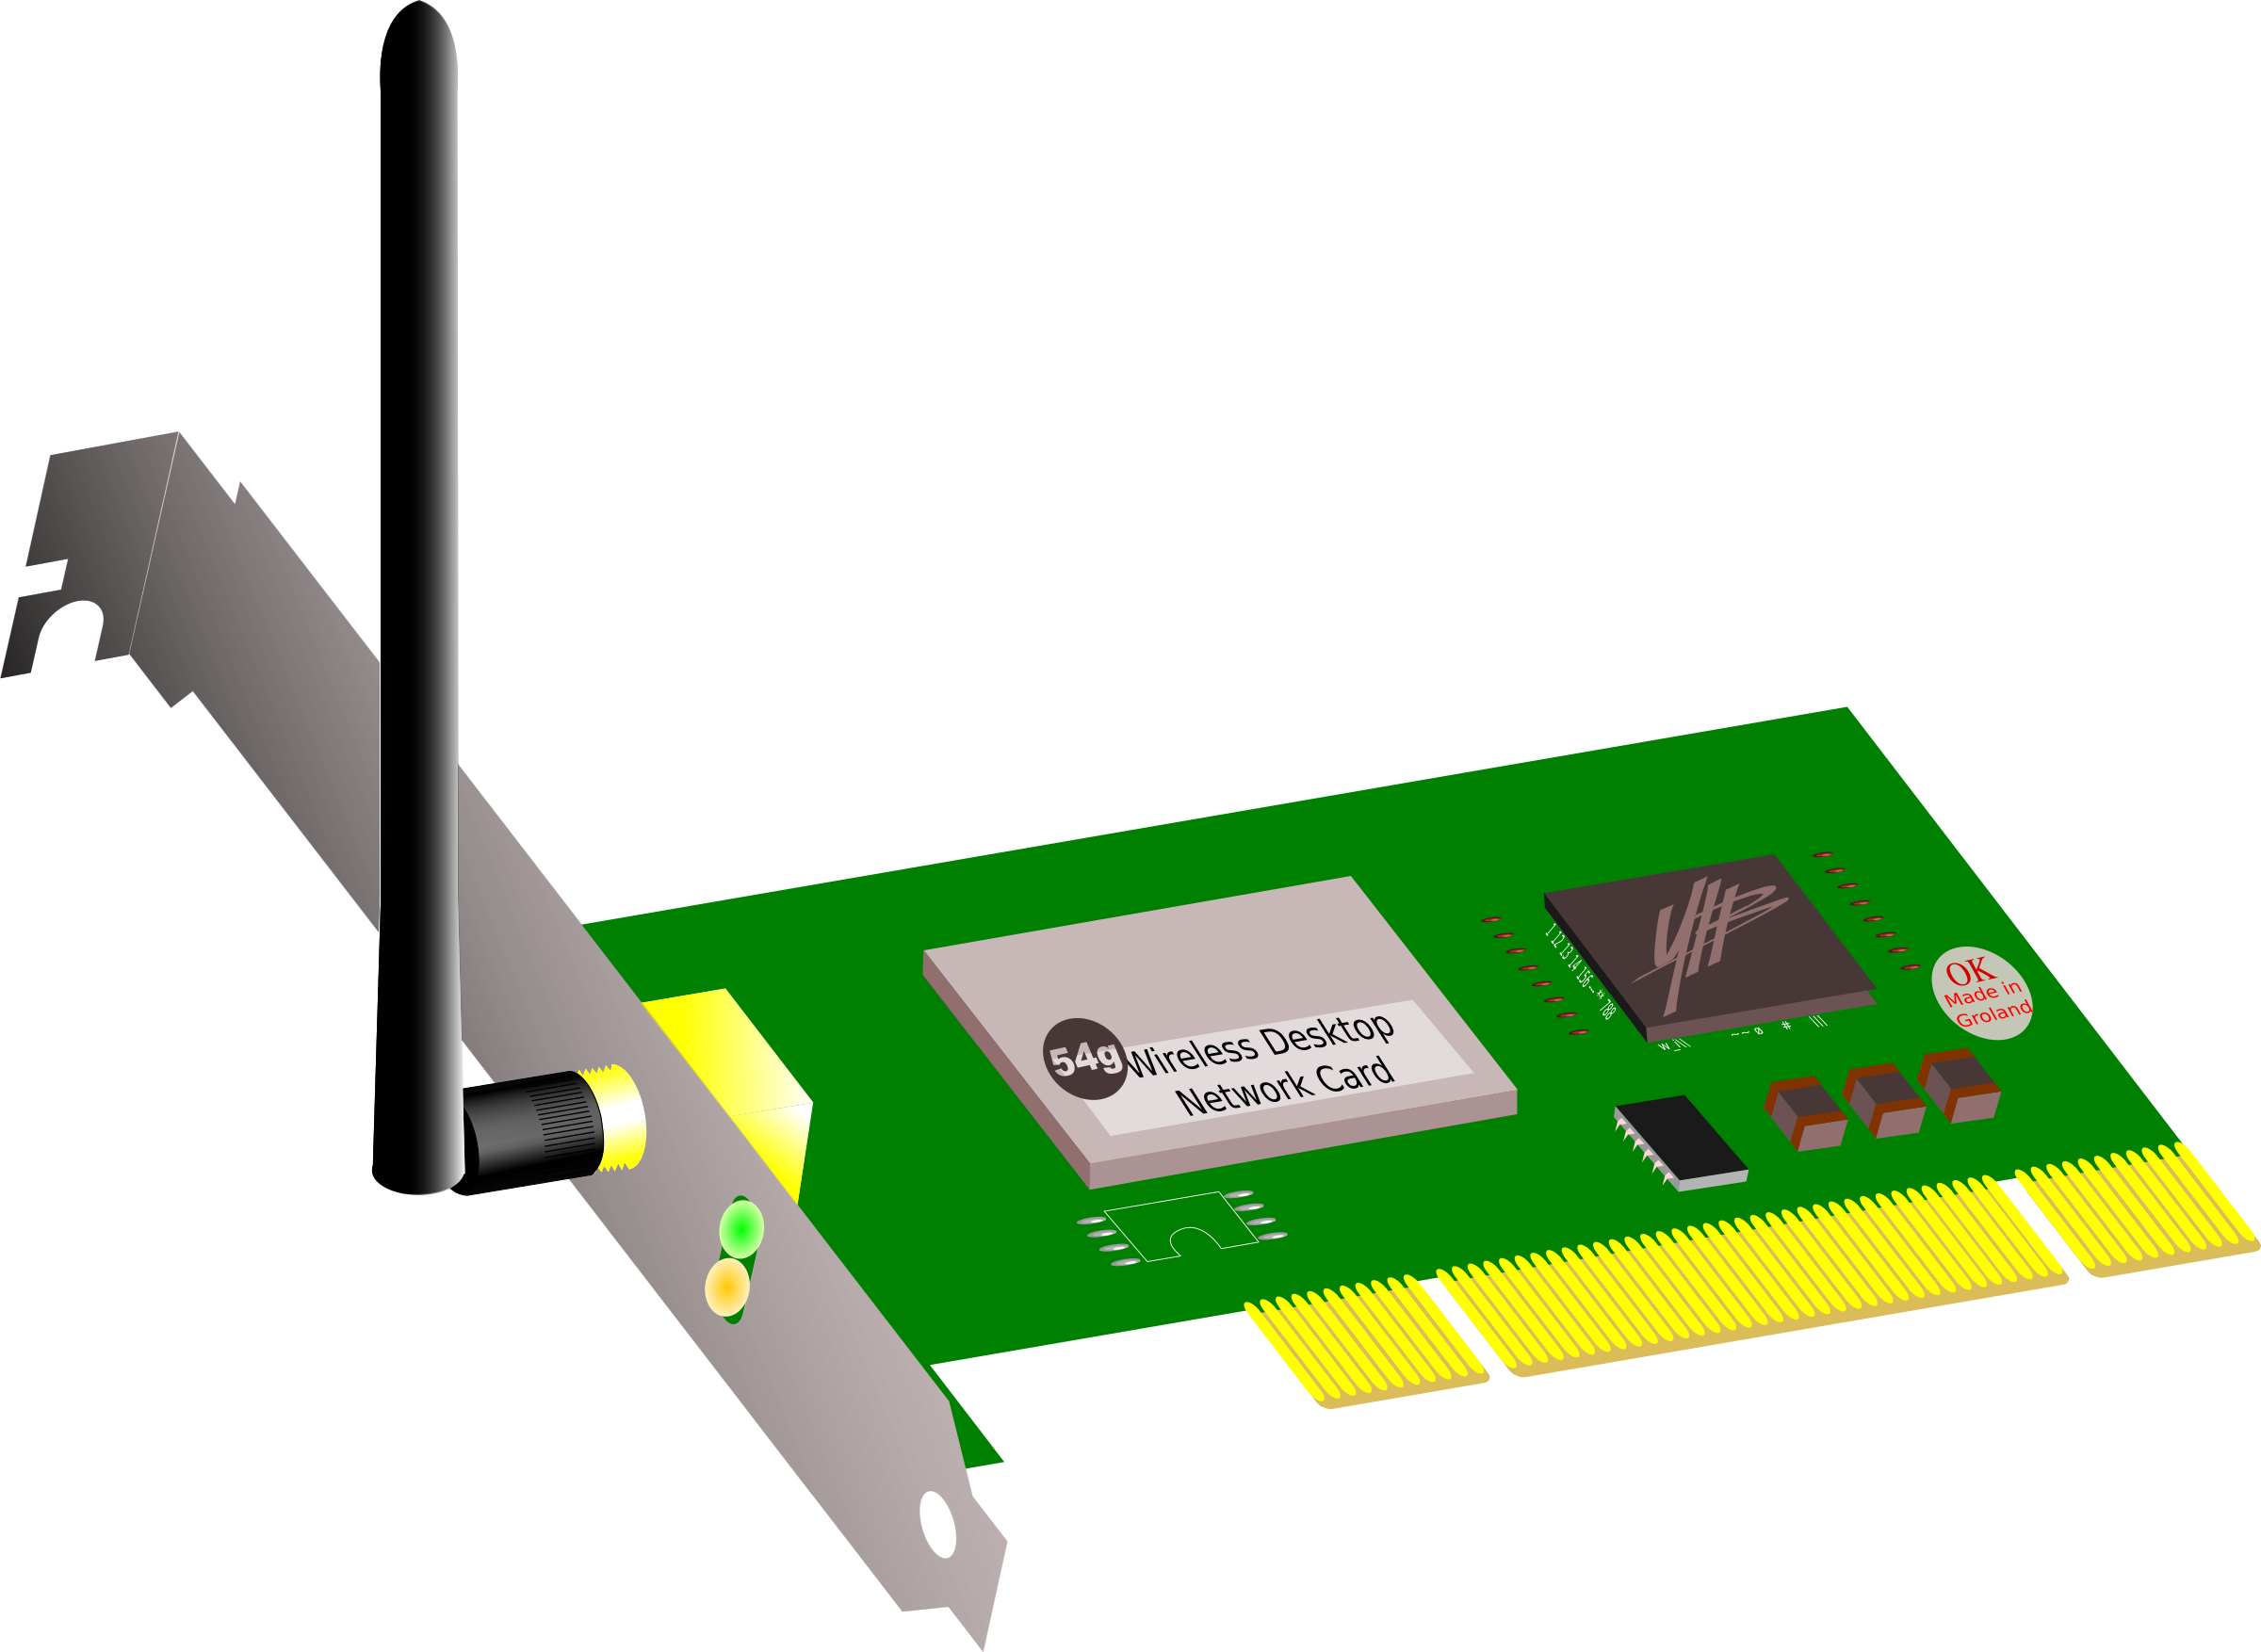 wifi pci card by waielbi